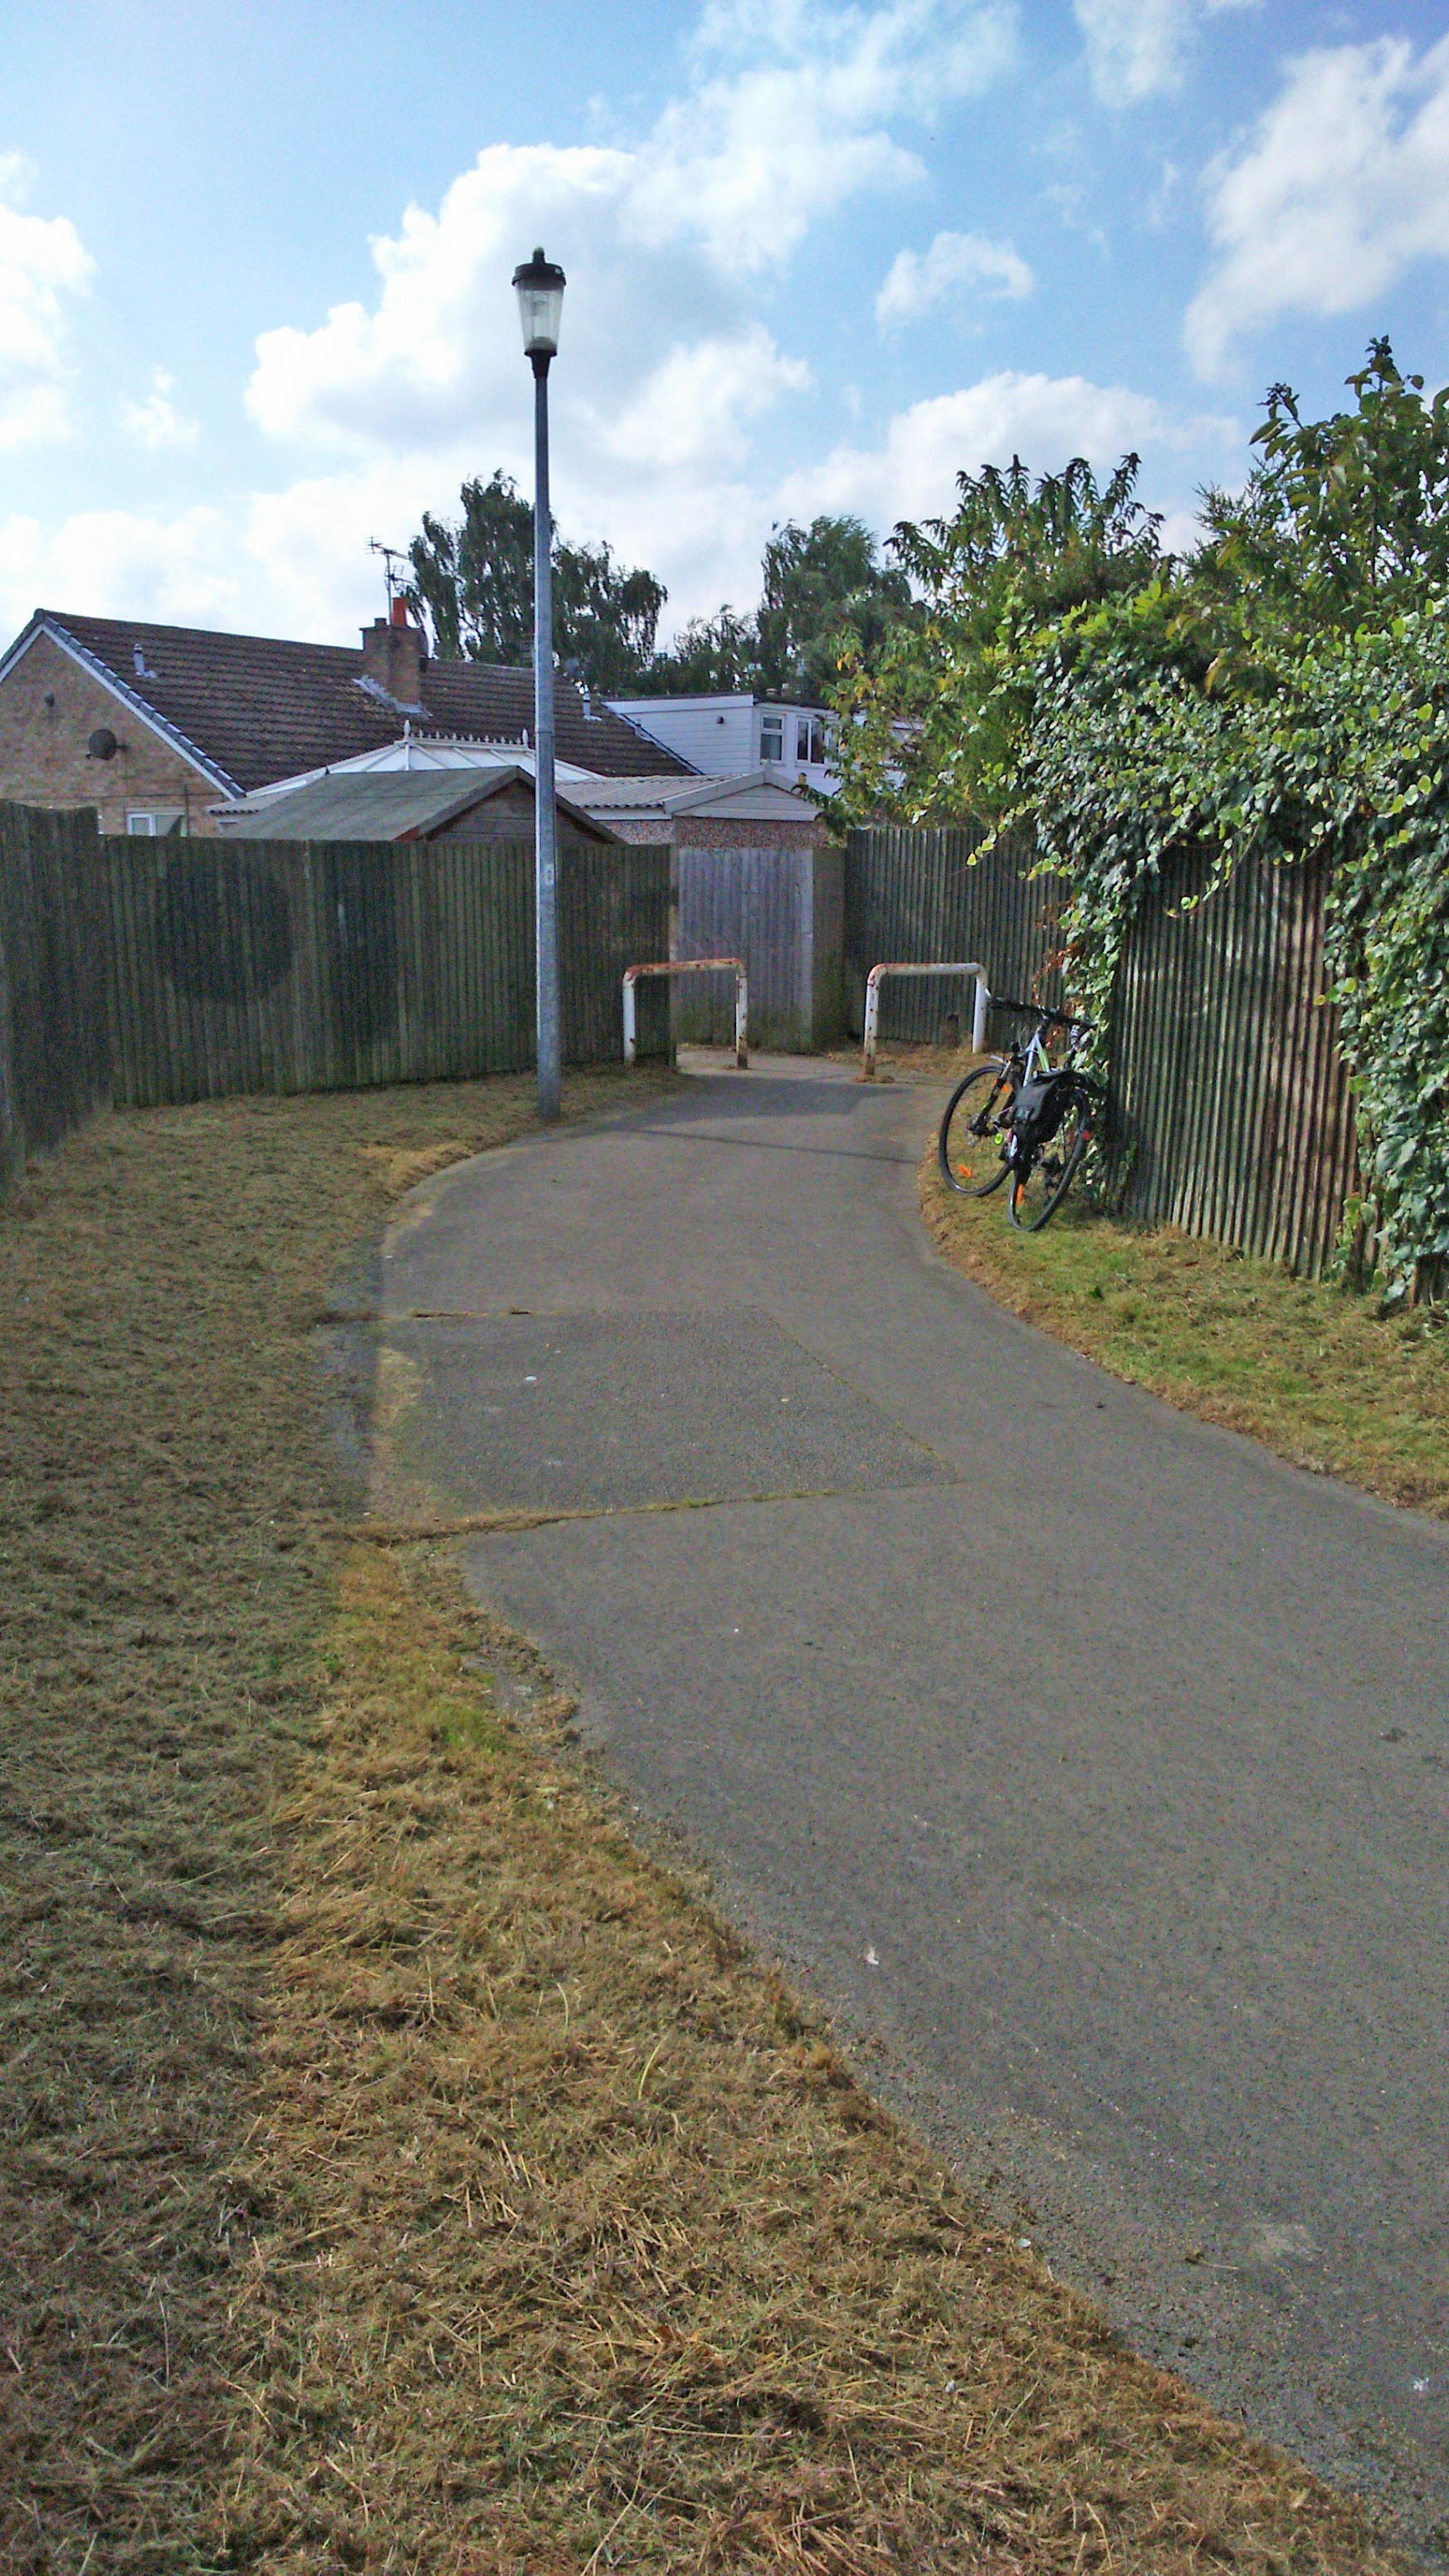 Teal Drive - Carrfield snicket grass cut